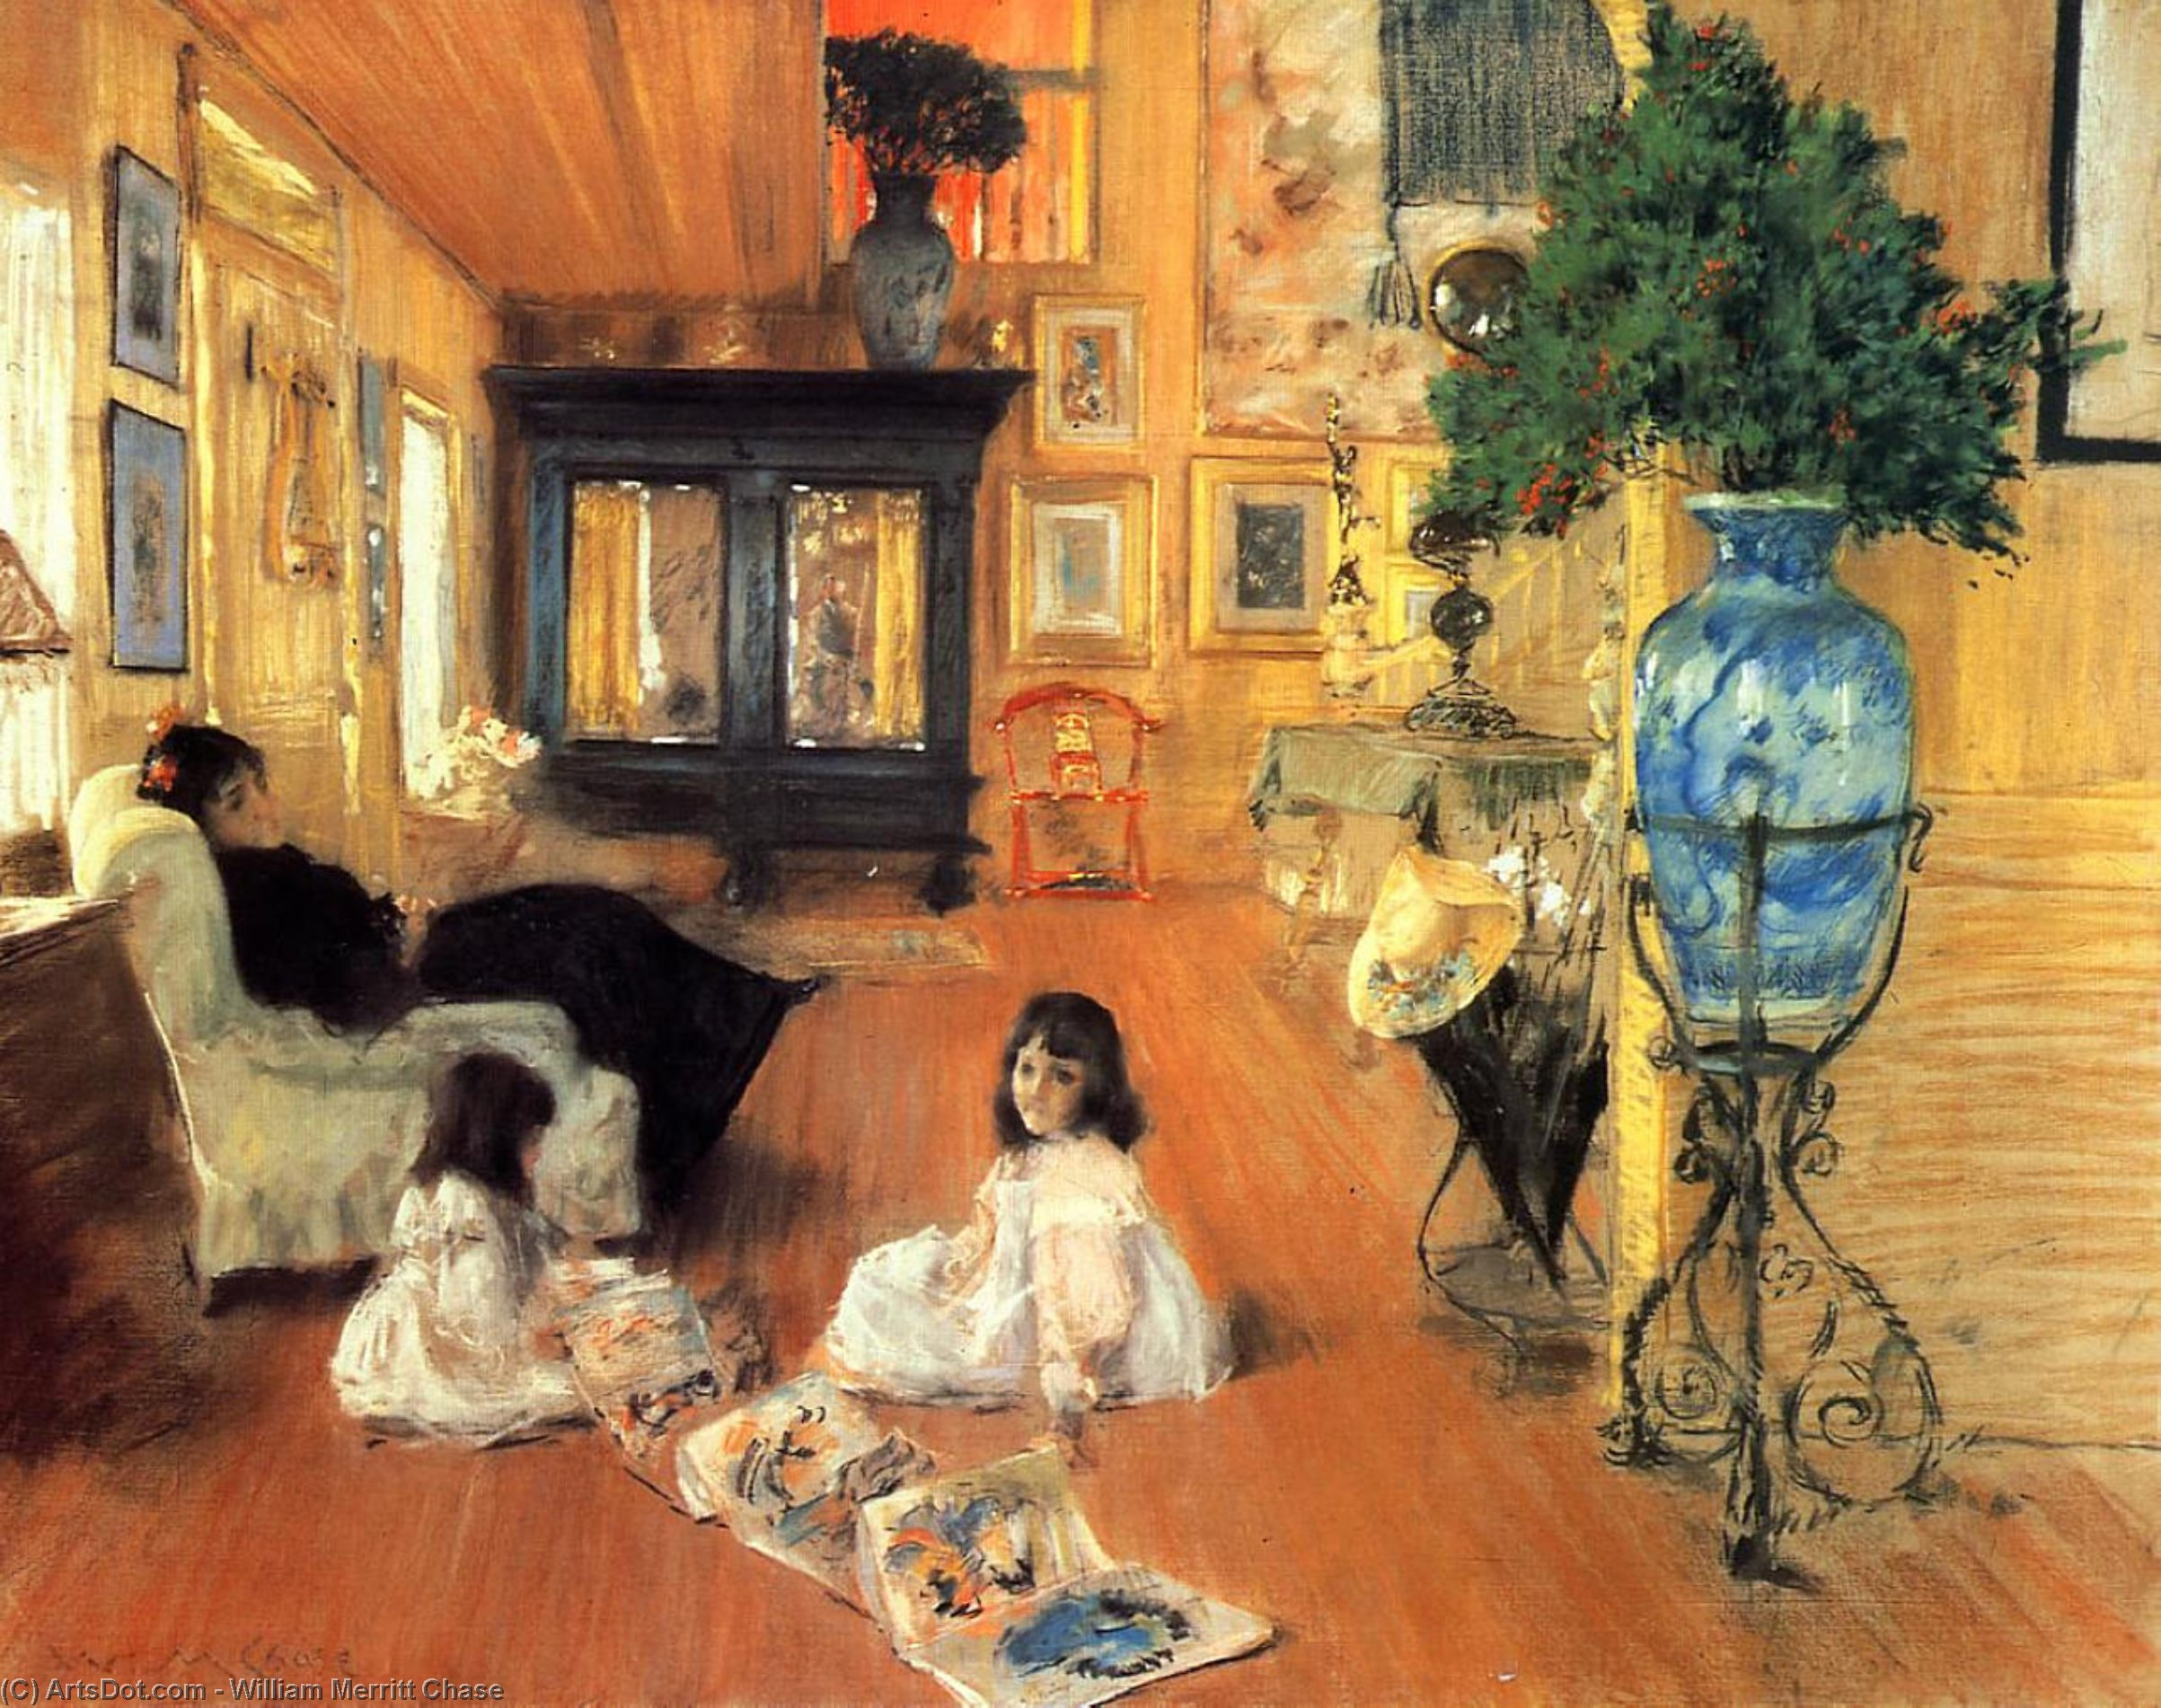 Sala a Shinnecock, pastello di William Merritt Chase (1849-1916, United States)